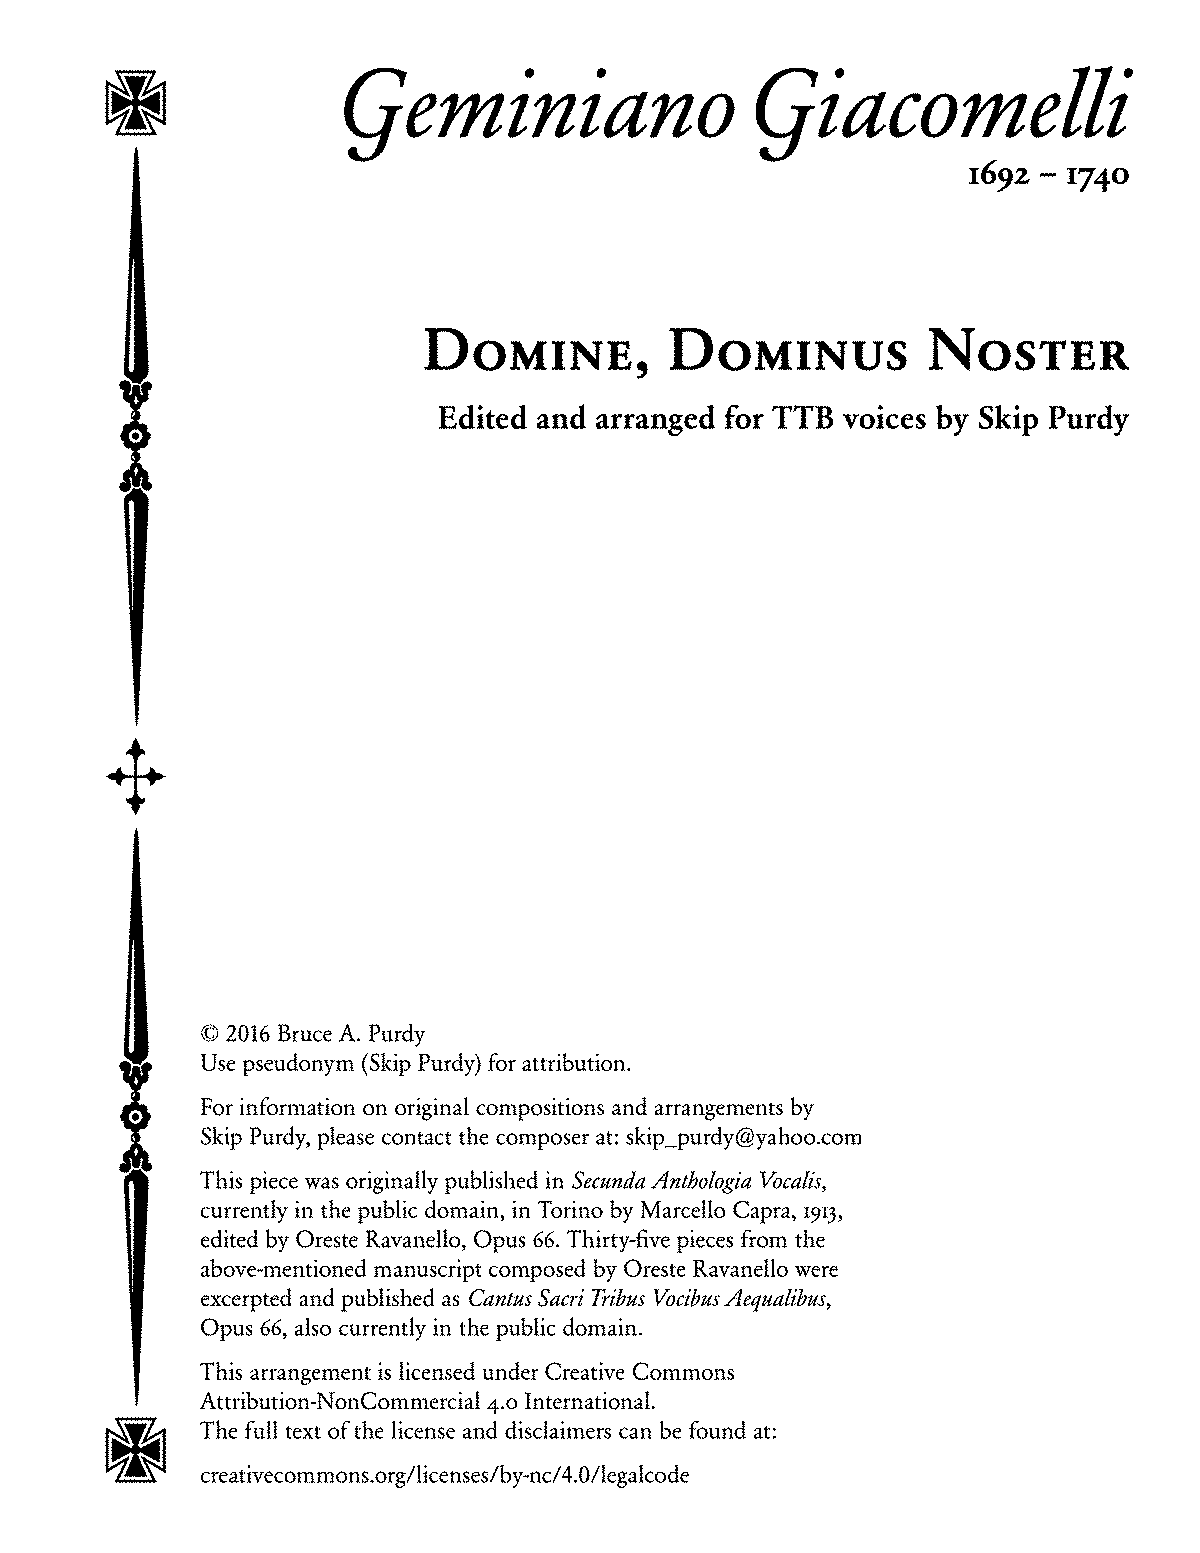 PMLP613971-Giacomelli-Geminiano Domine Dominus Noster.pdf